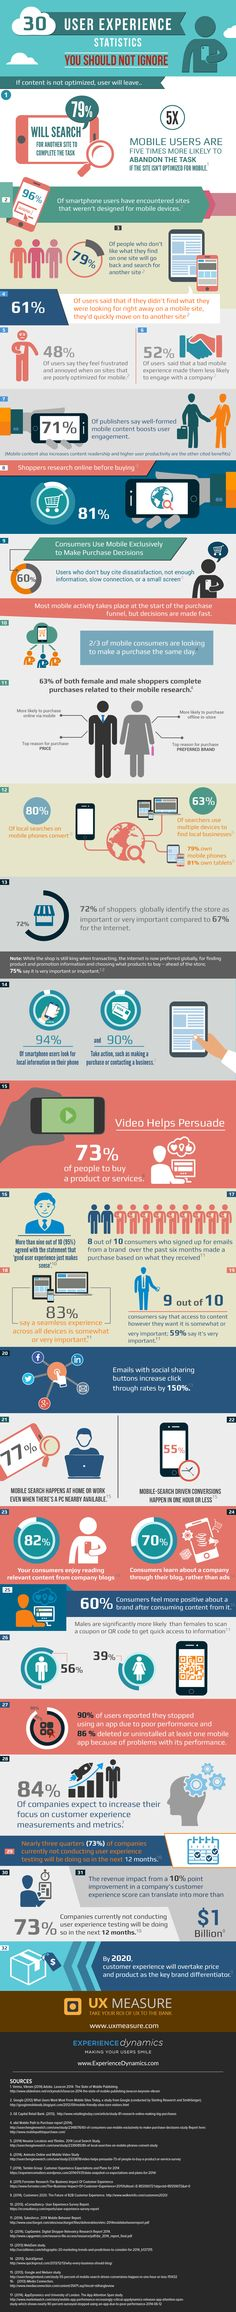 #Statistics for #User #Experience You Should Consider while Working on Site #Content #Optimization #INFOGRAPHIC - #TopNetSEO